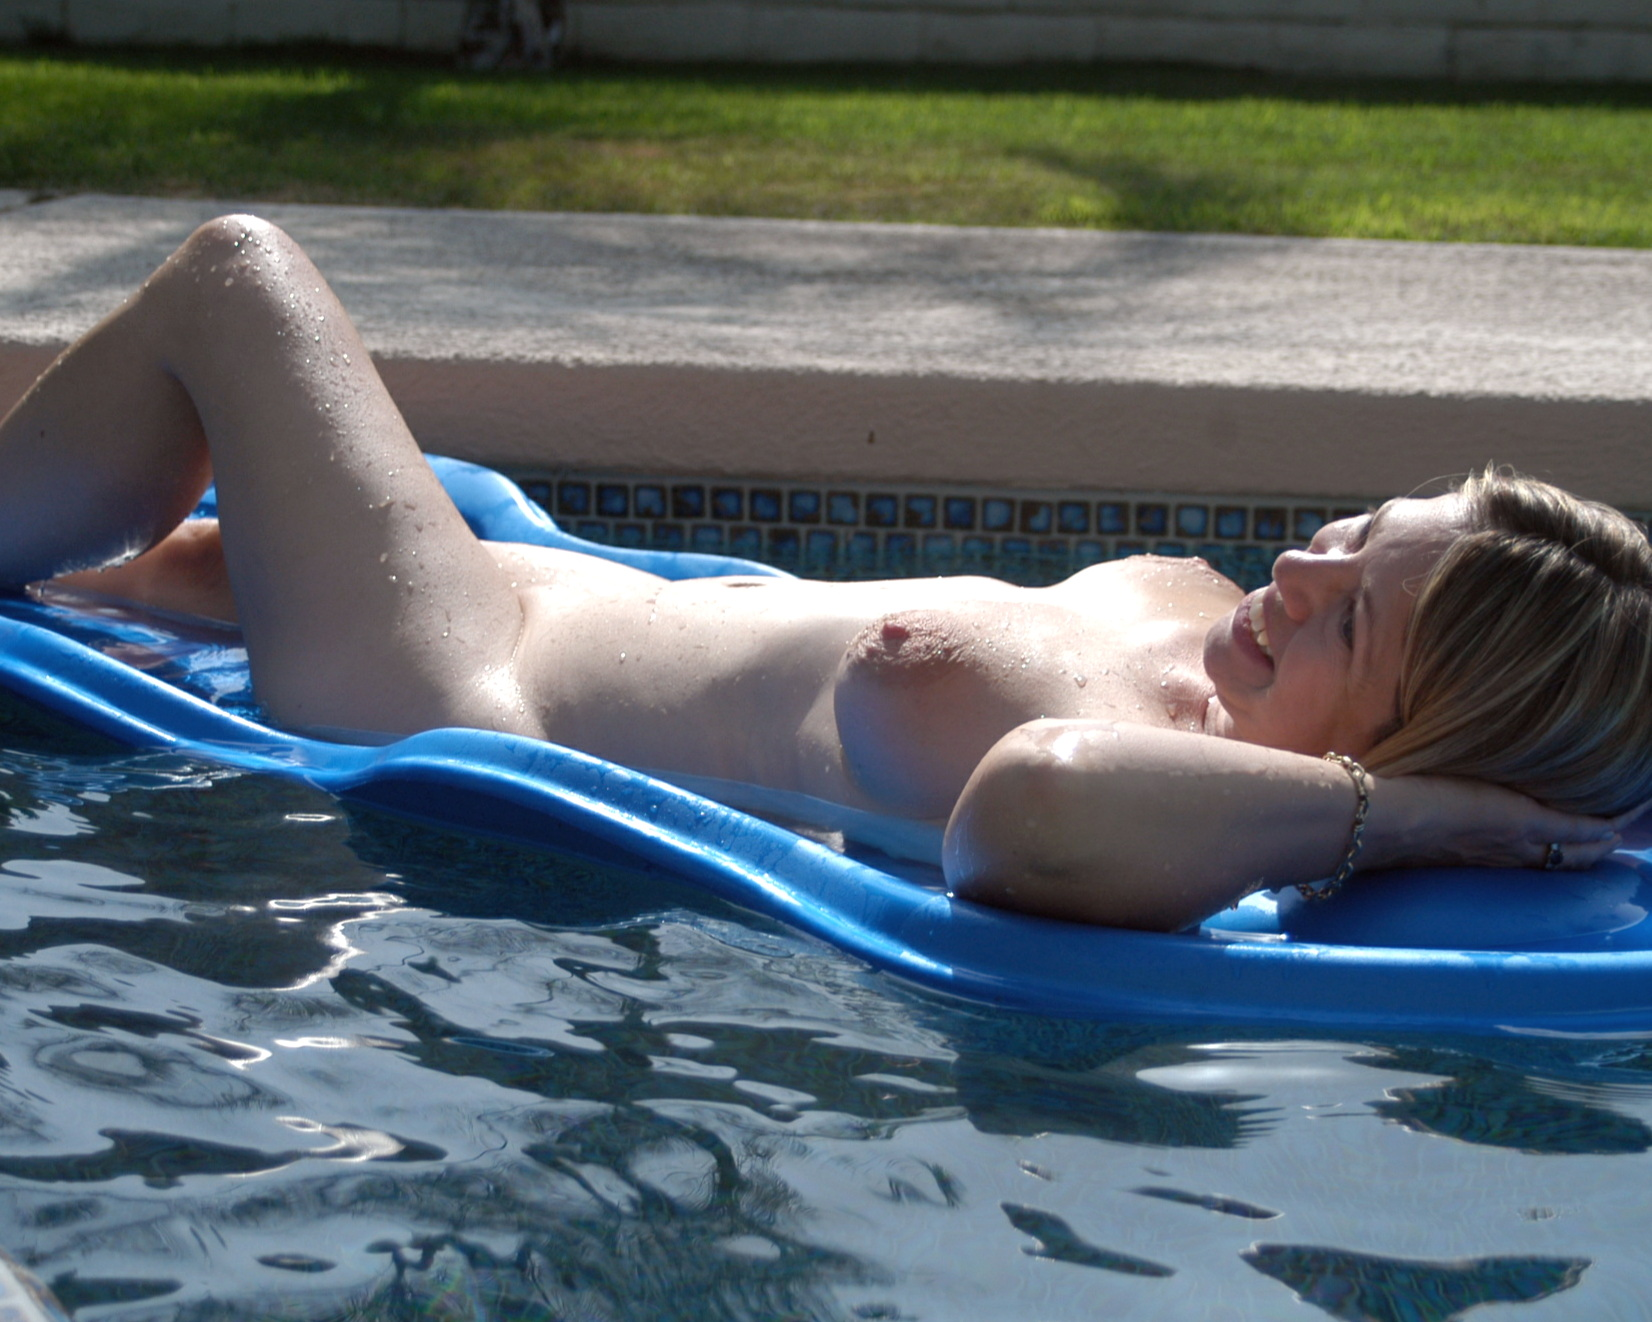 nudist rec center relaxation) File:Relaxing at Terra Cotta Inn Nudist Resort Palm Springs.jpg